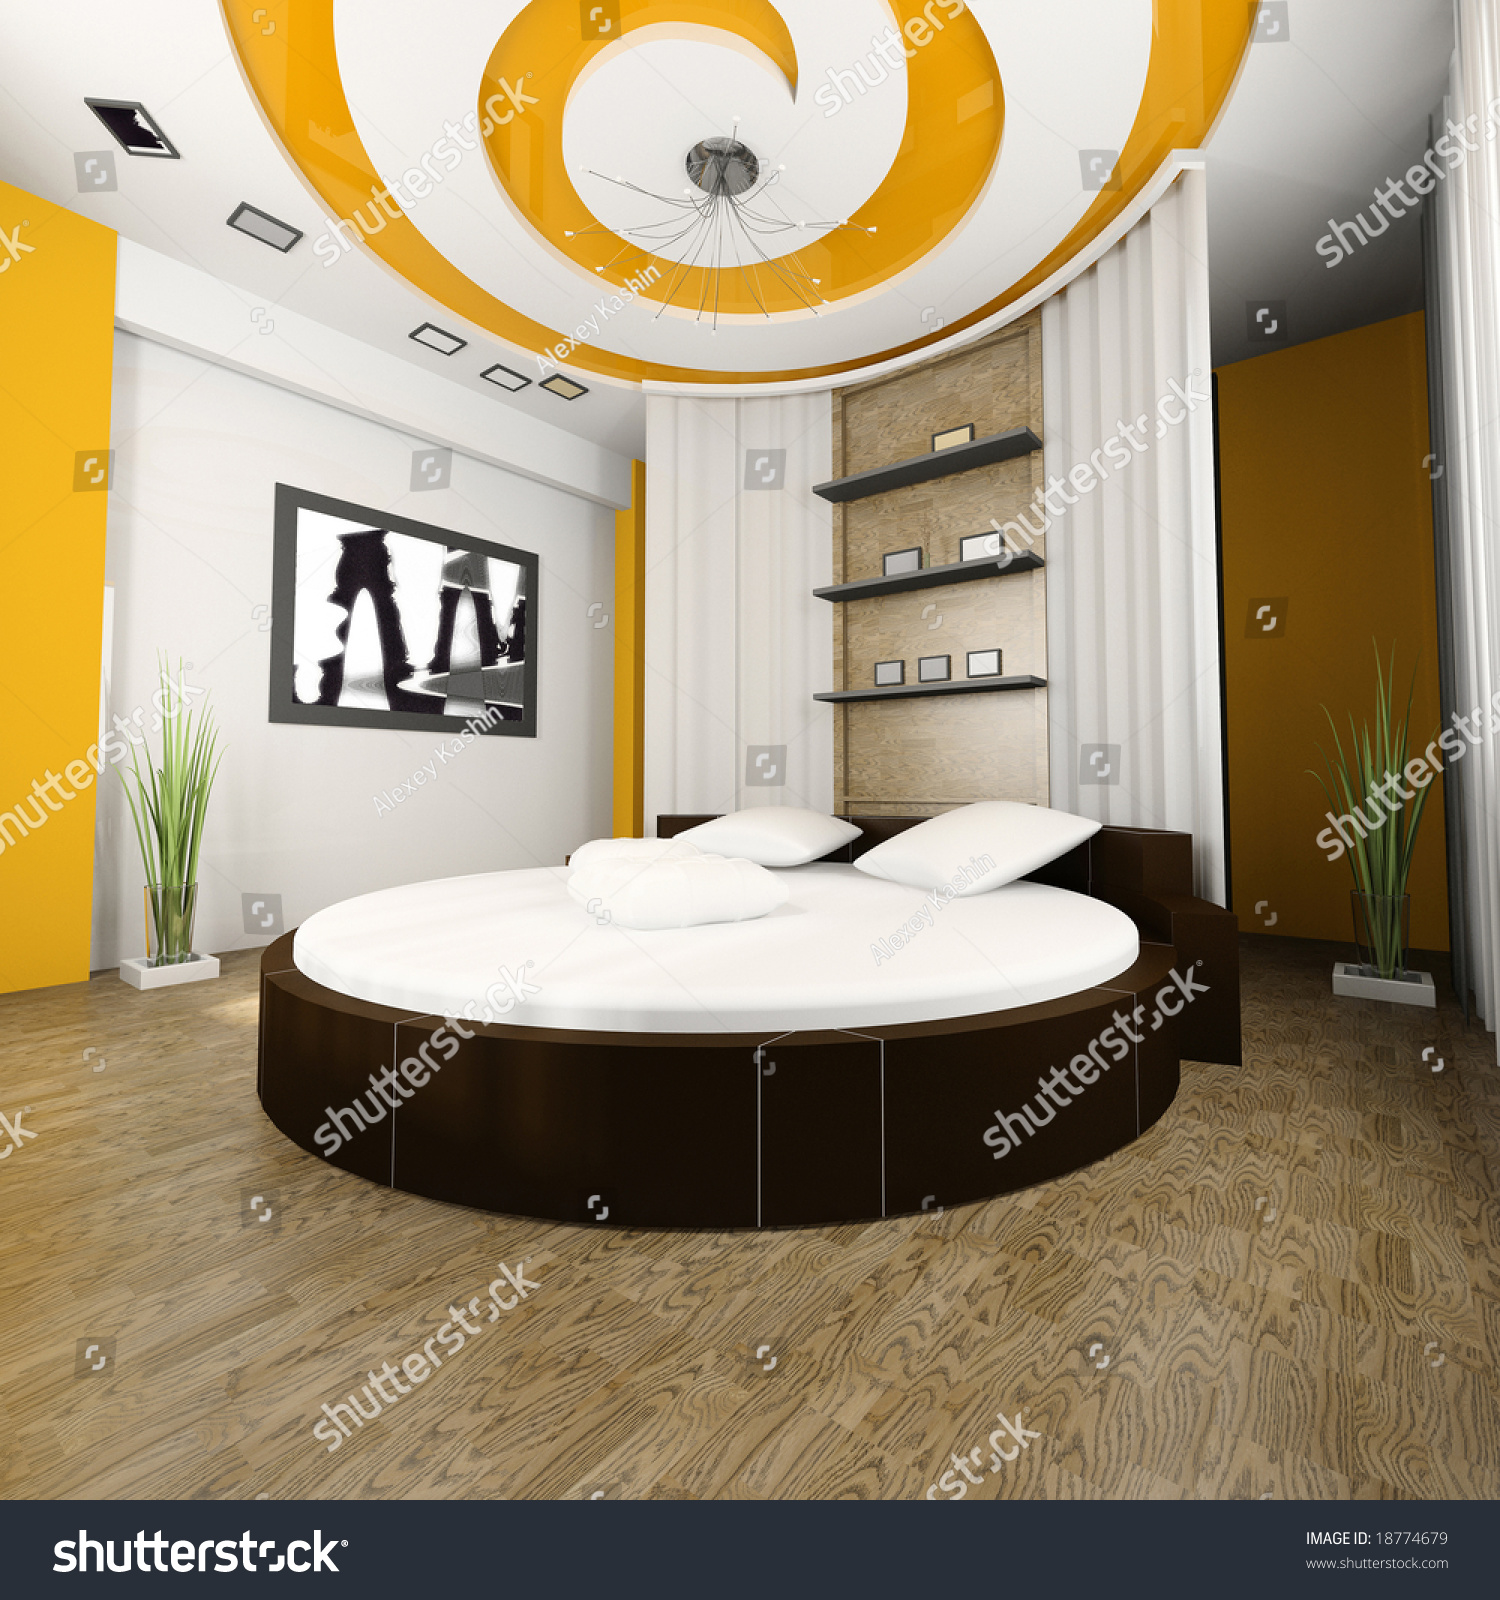 Sleeping room with a round bed 3d image. Sleeping Room Round Bed 3d Image Stock Illustration 18774679